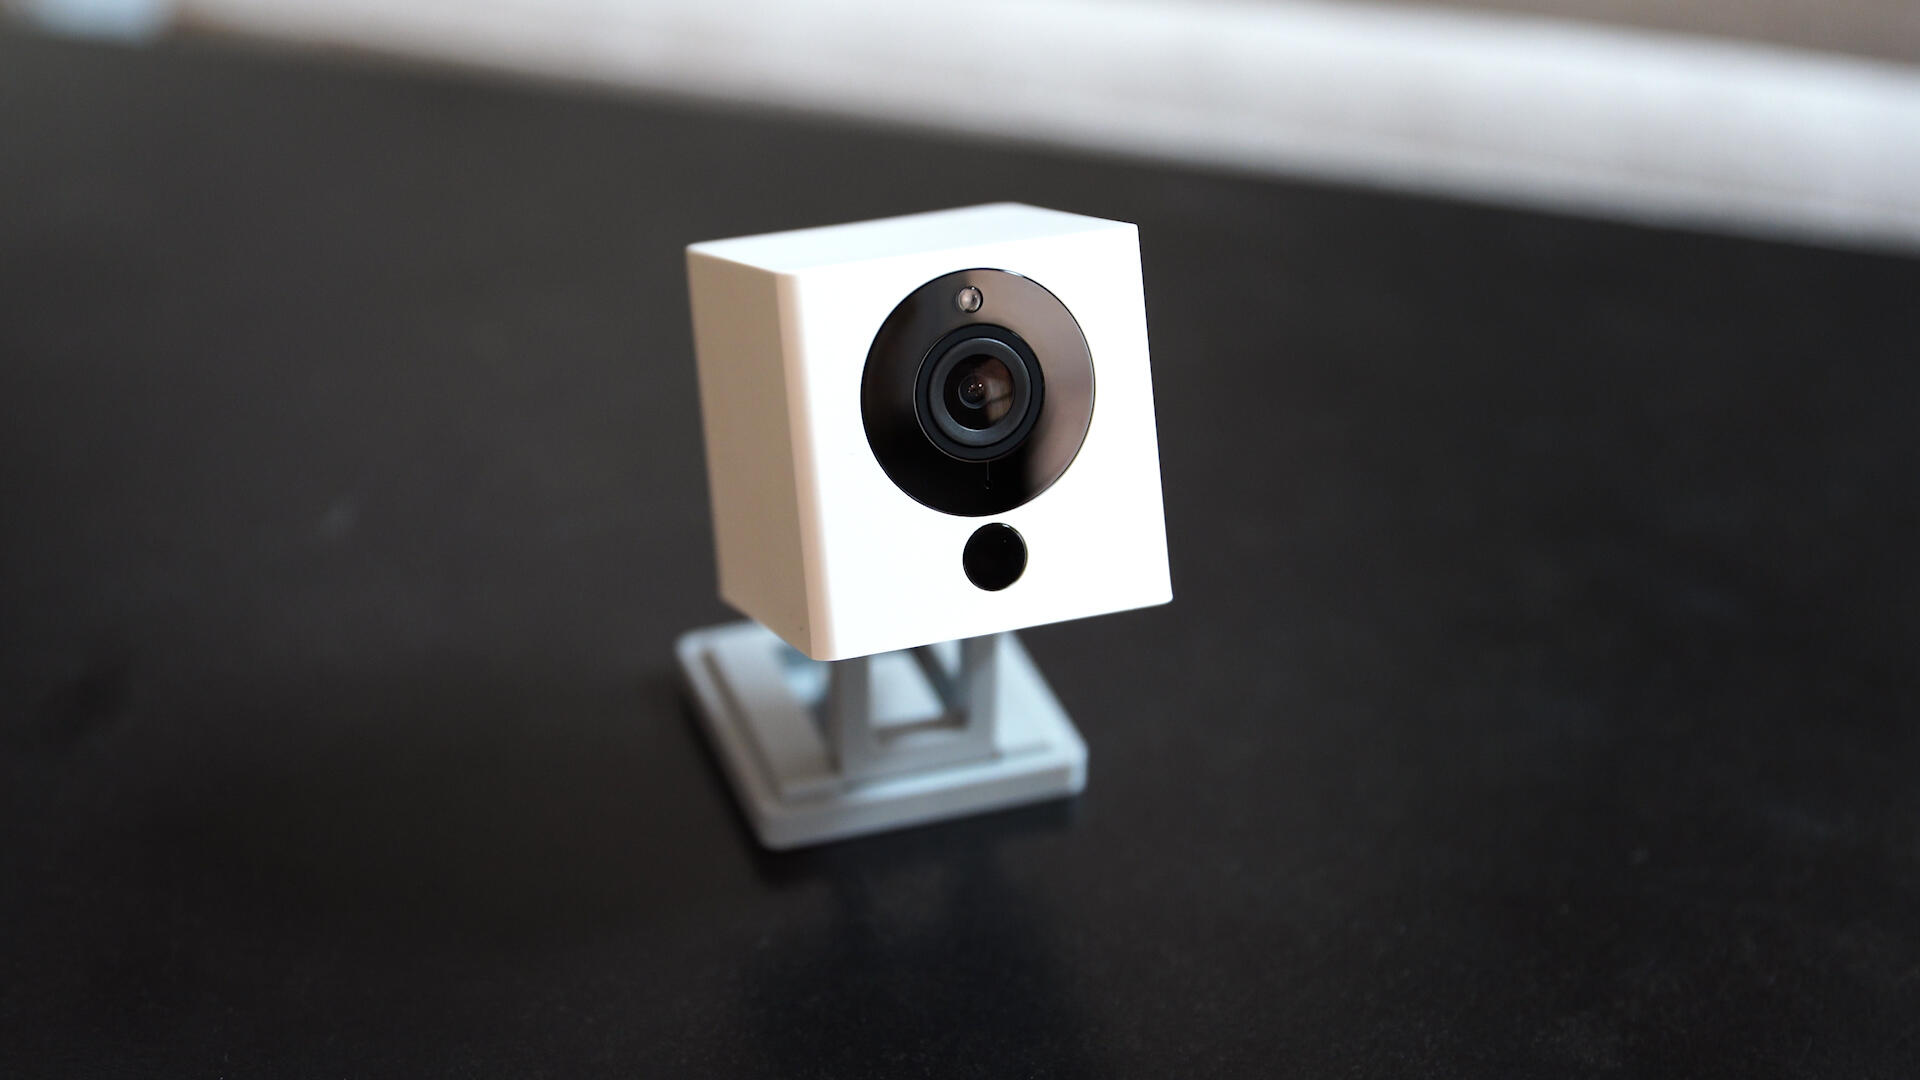 Video: Hacks@Home: How to install a security camera